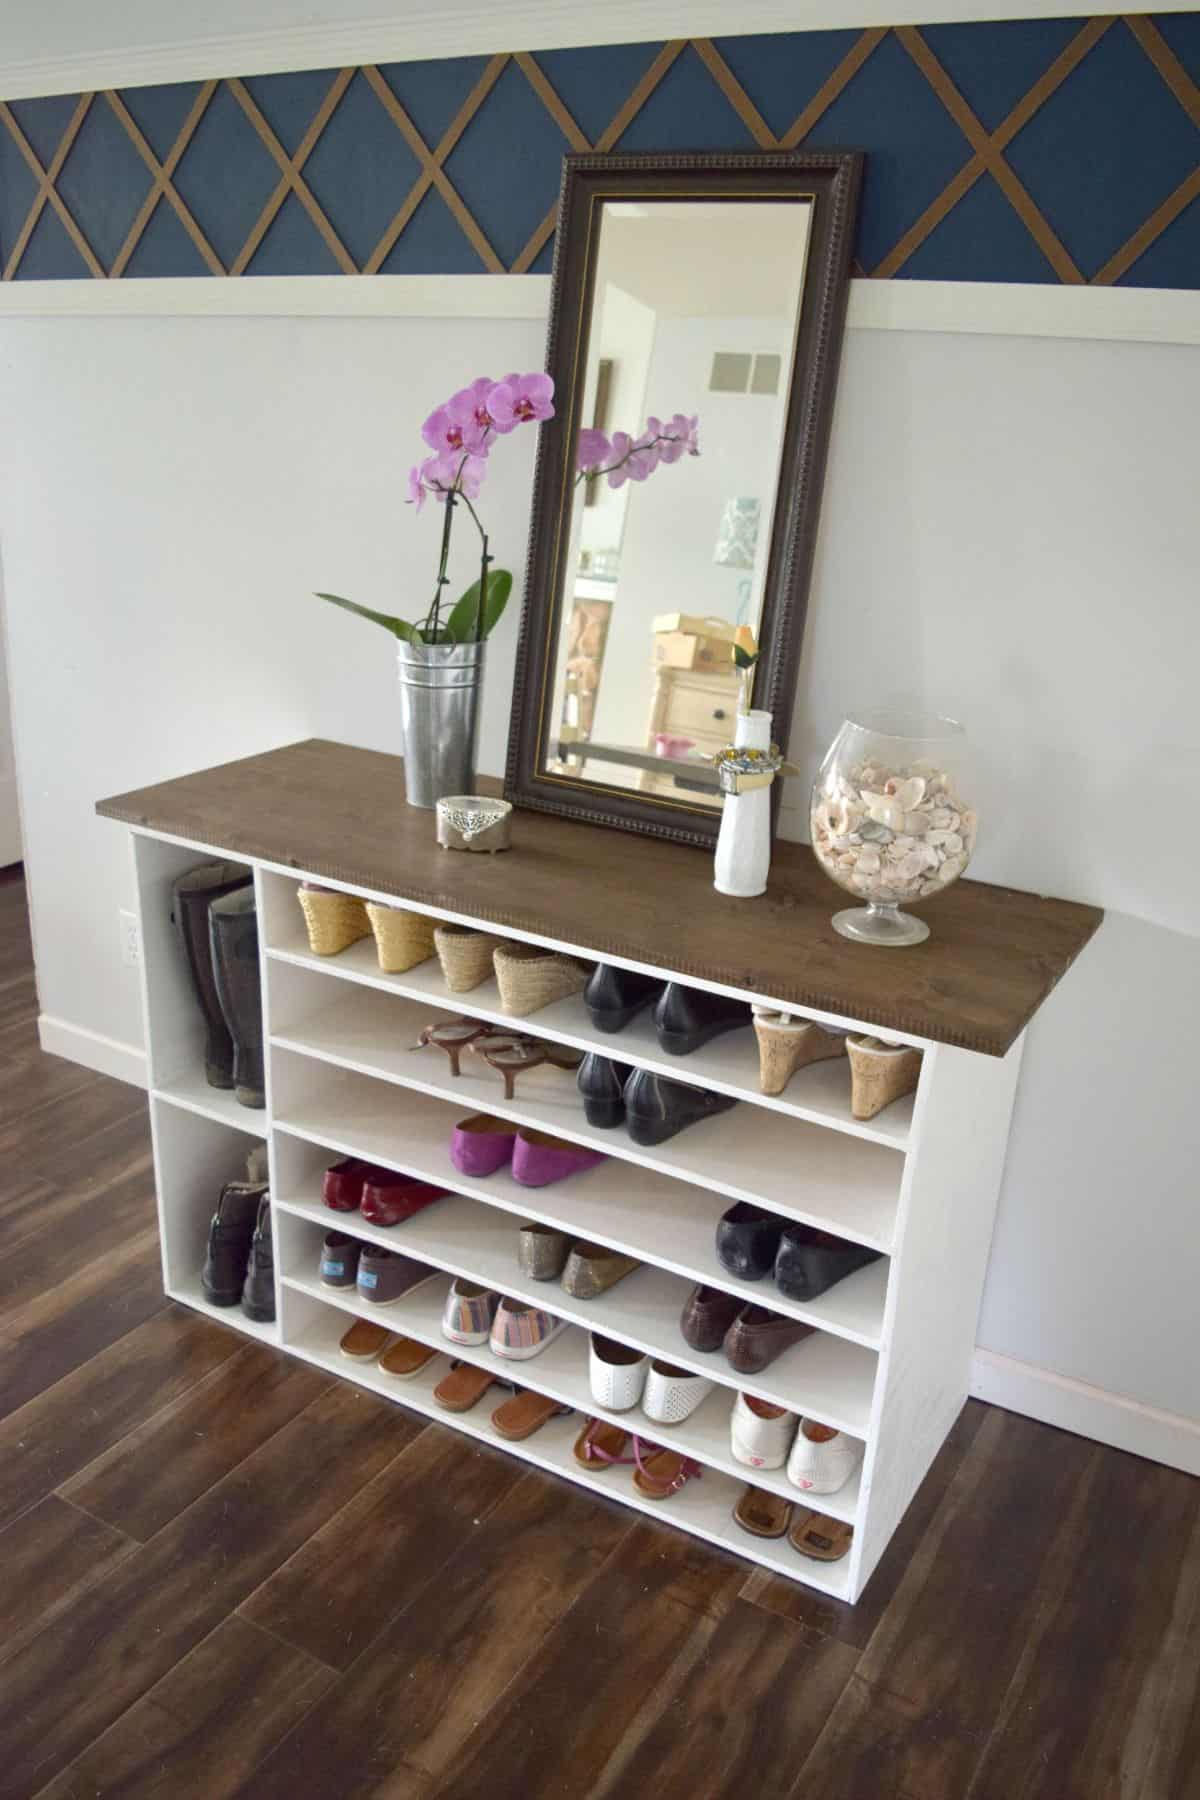 5 Stylish Diy Shoe Racks Diy Thought: stylish shoe rack